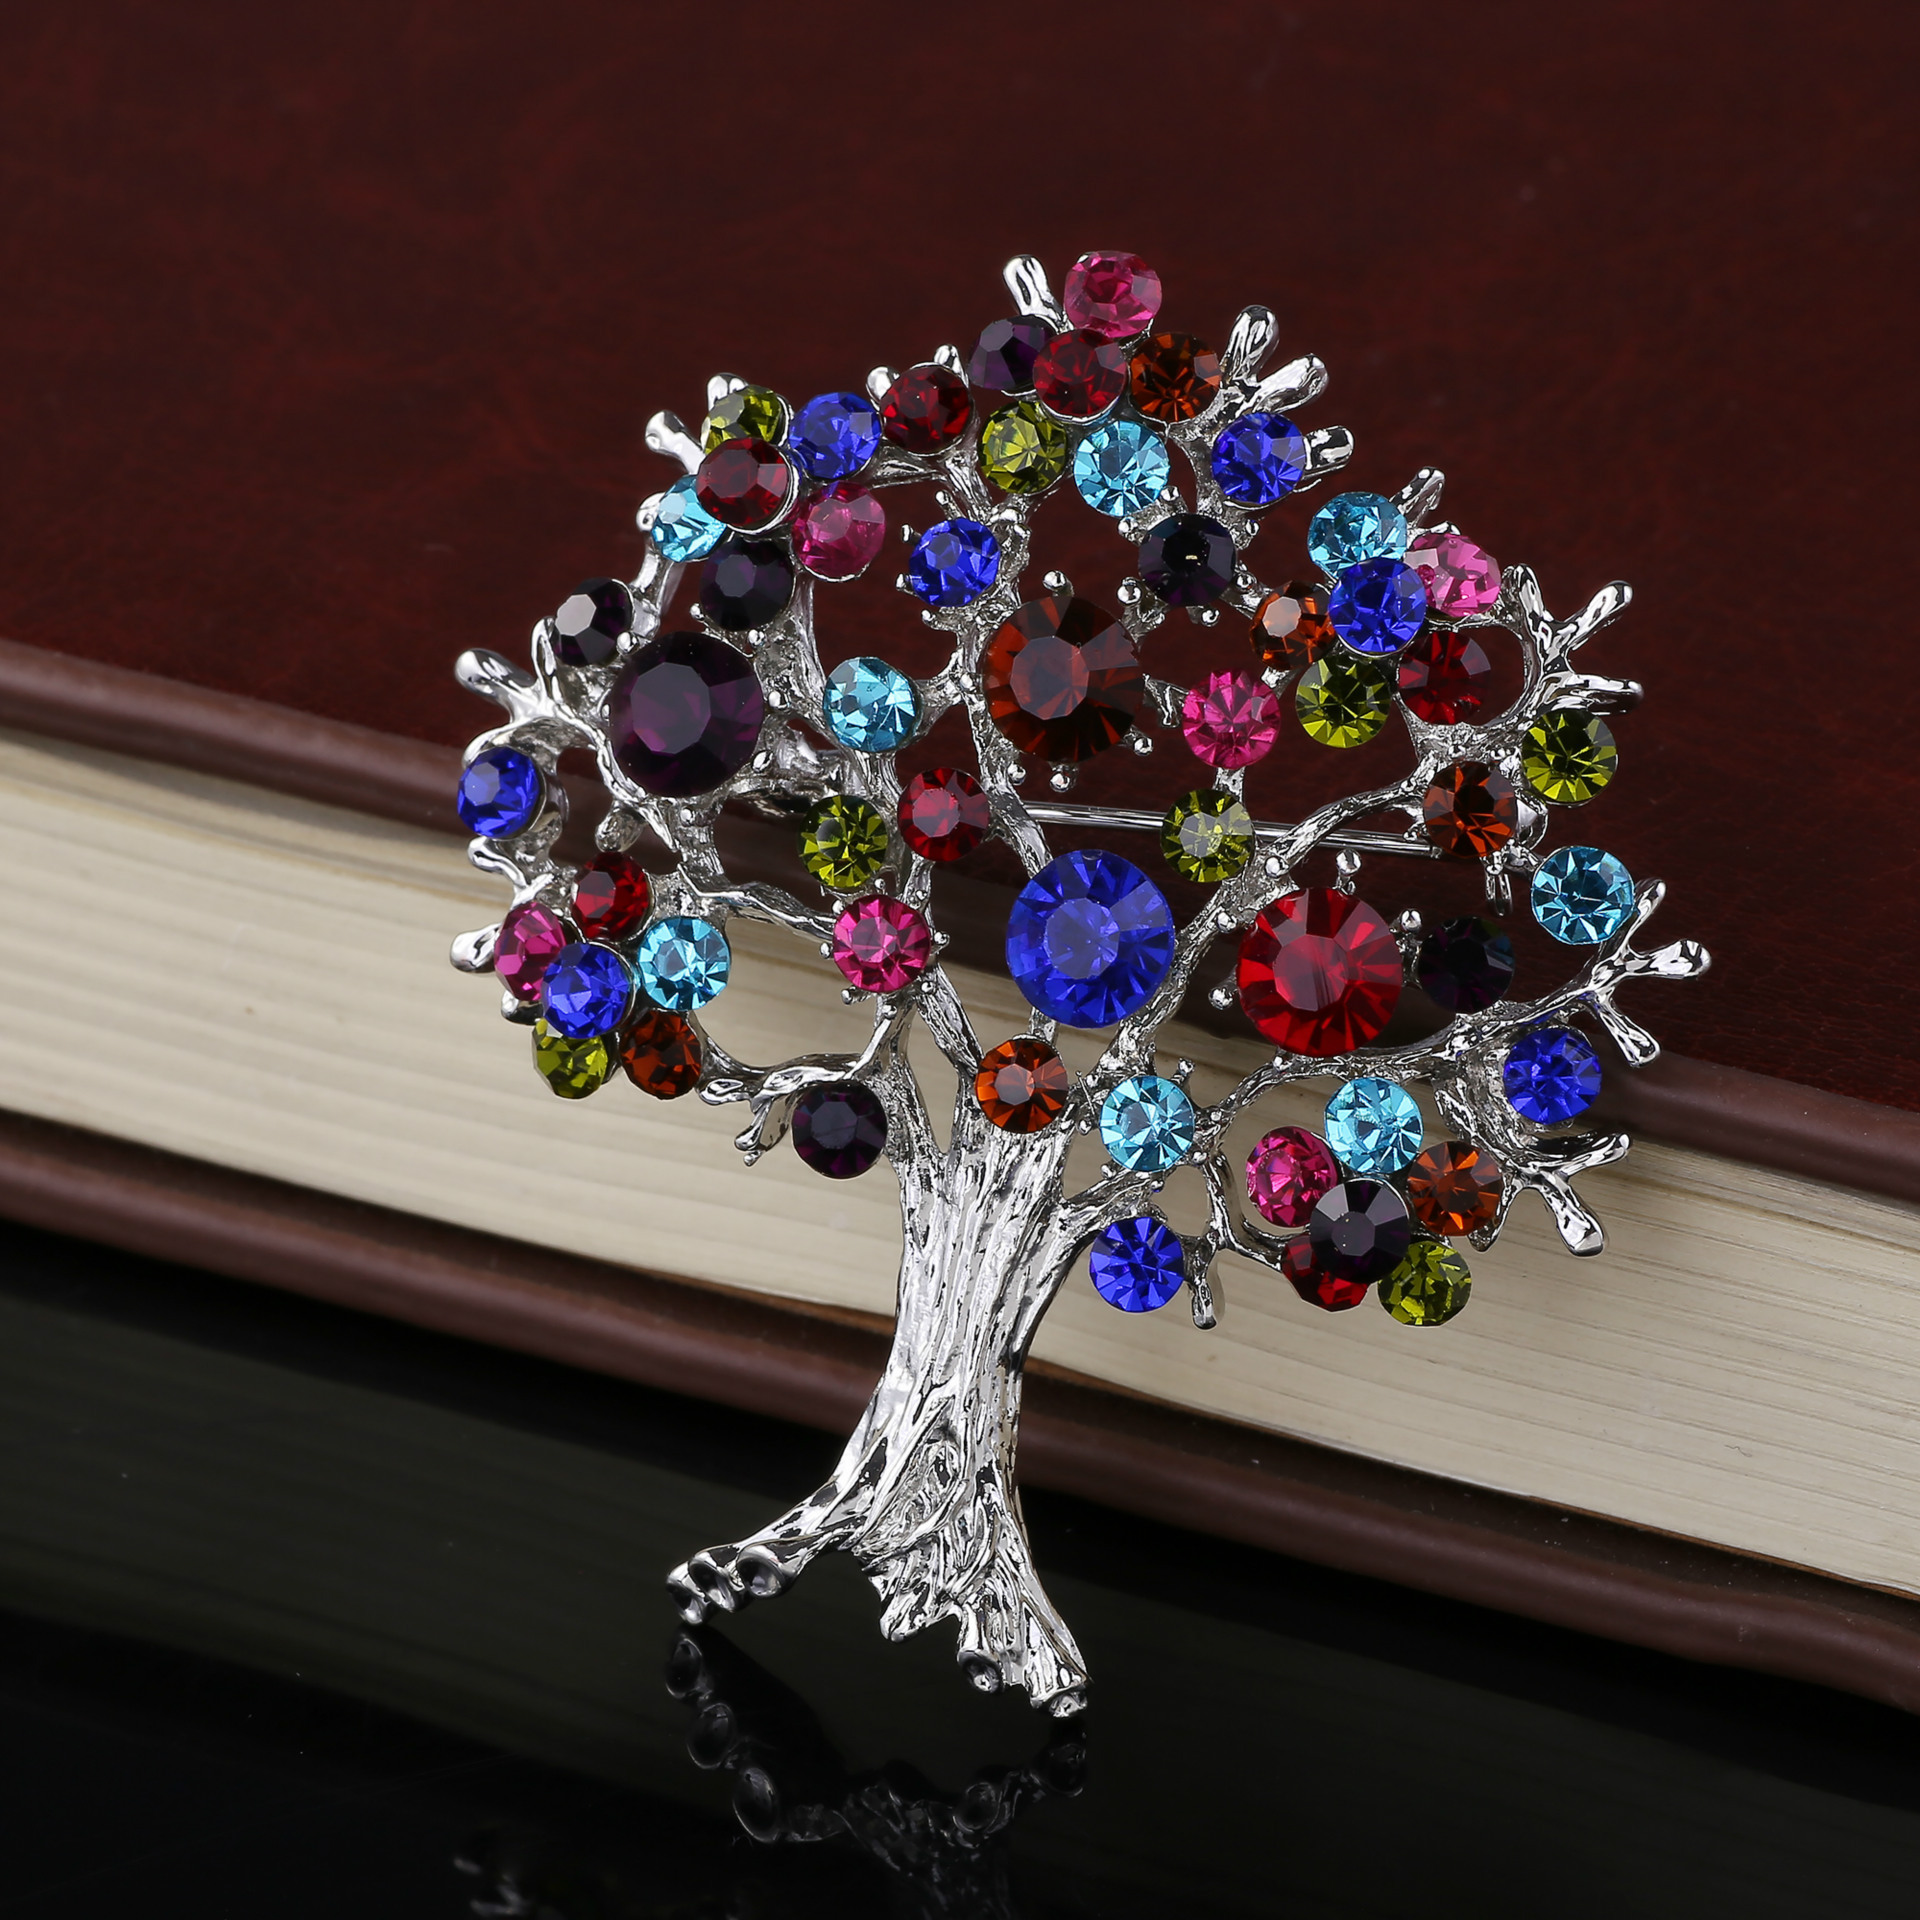 Korean Life Stars Tree Alloy Brooch Shawl Buckle For Wedding Corsage Scarf Wholesale Unisex(China (Mainland))